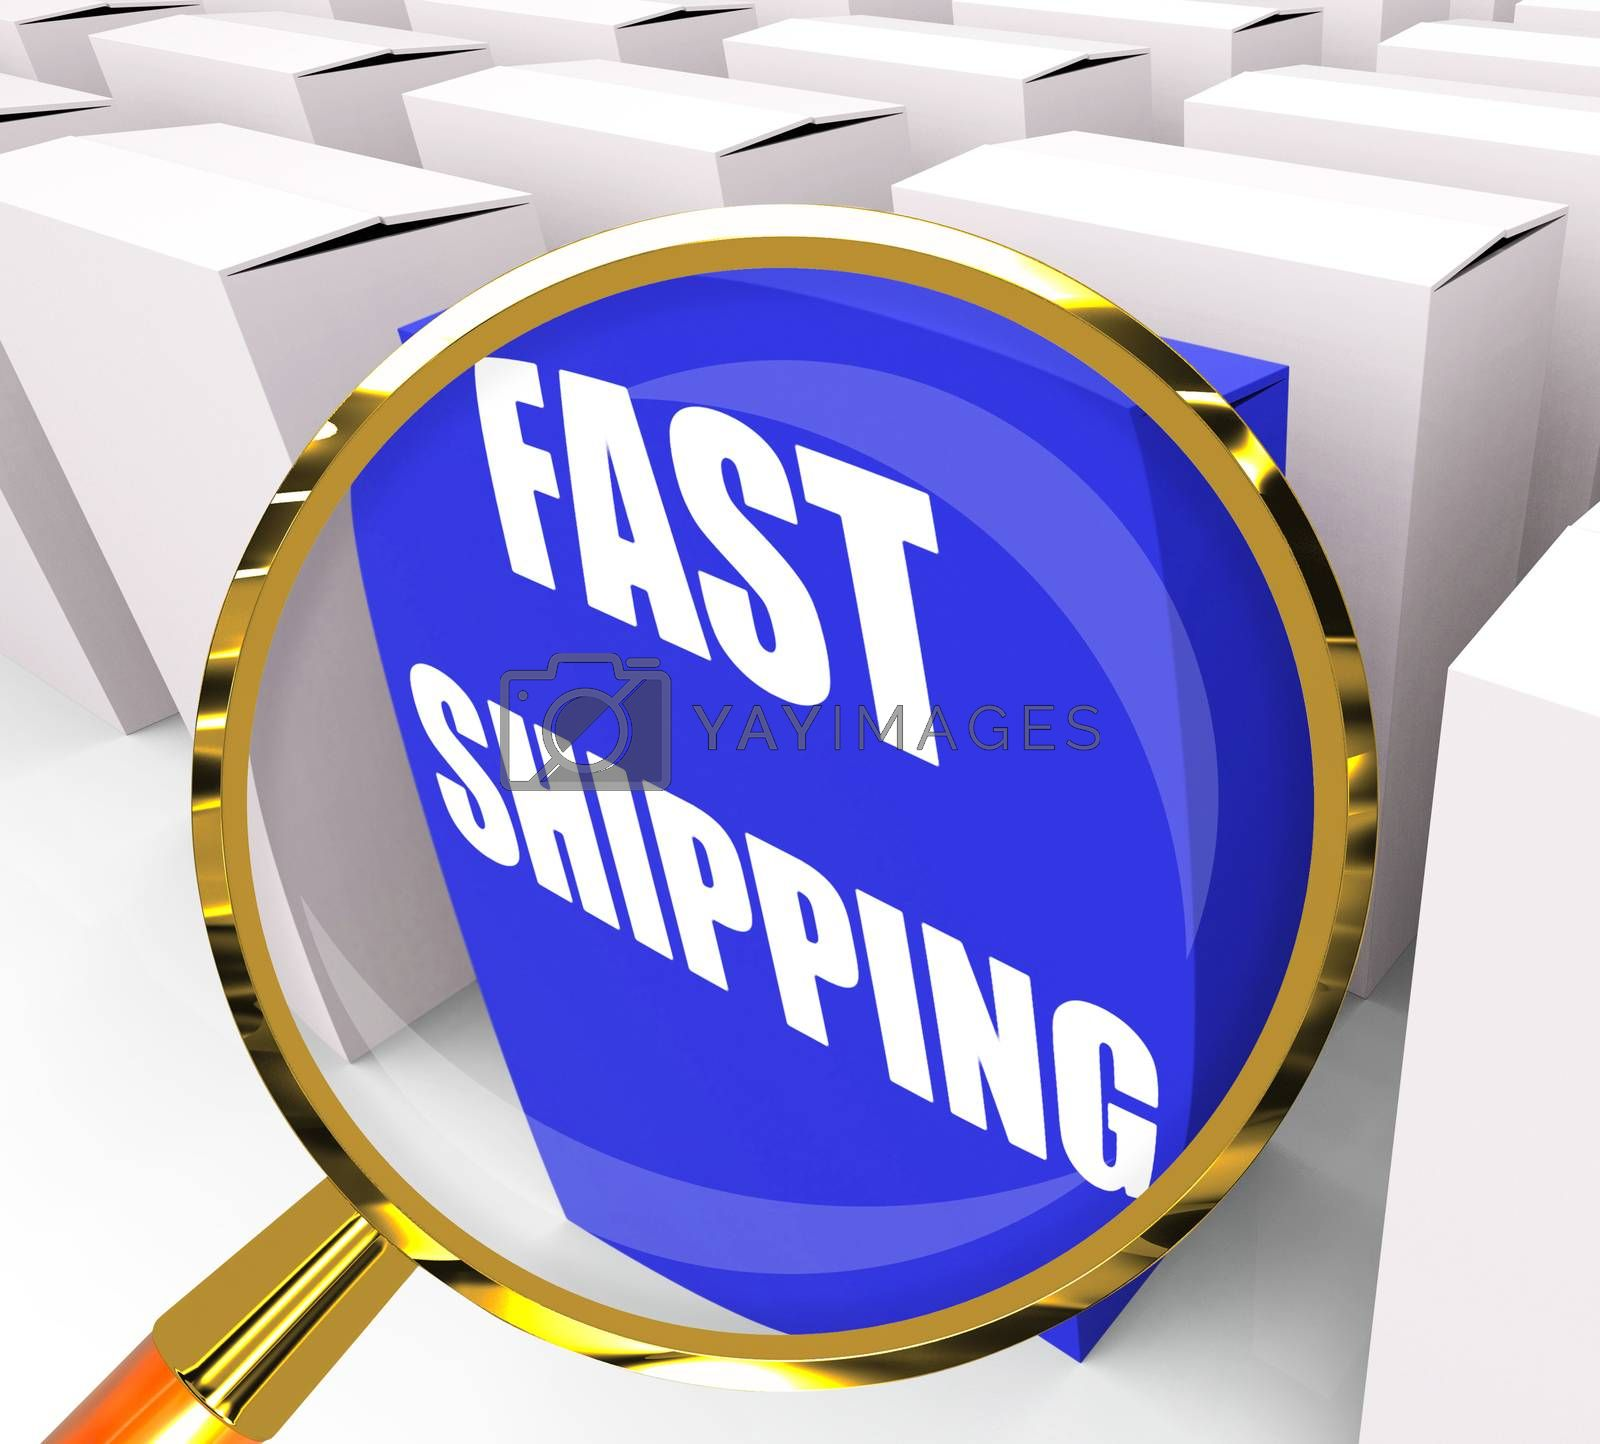 Fast Shipping Packet Shows Quick Deliveries and Transportation by stuartmiles